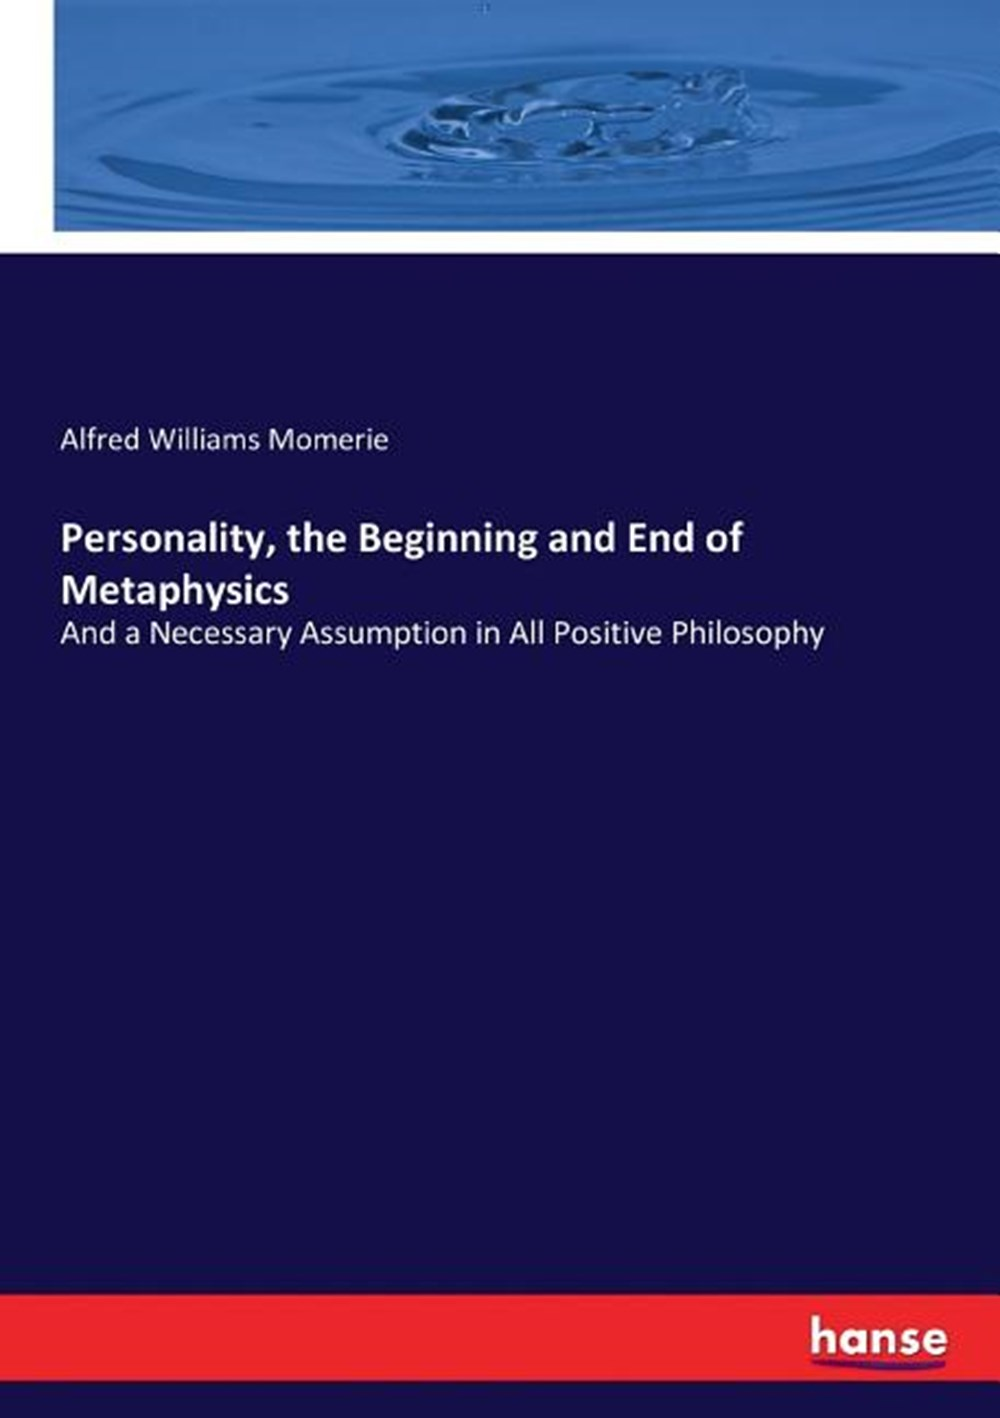 Personality, the Beginning and End of Metaphysics And a Necessary Assumption in All Positive Philoso